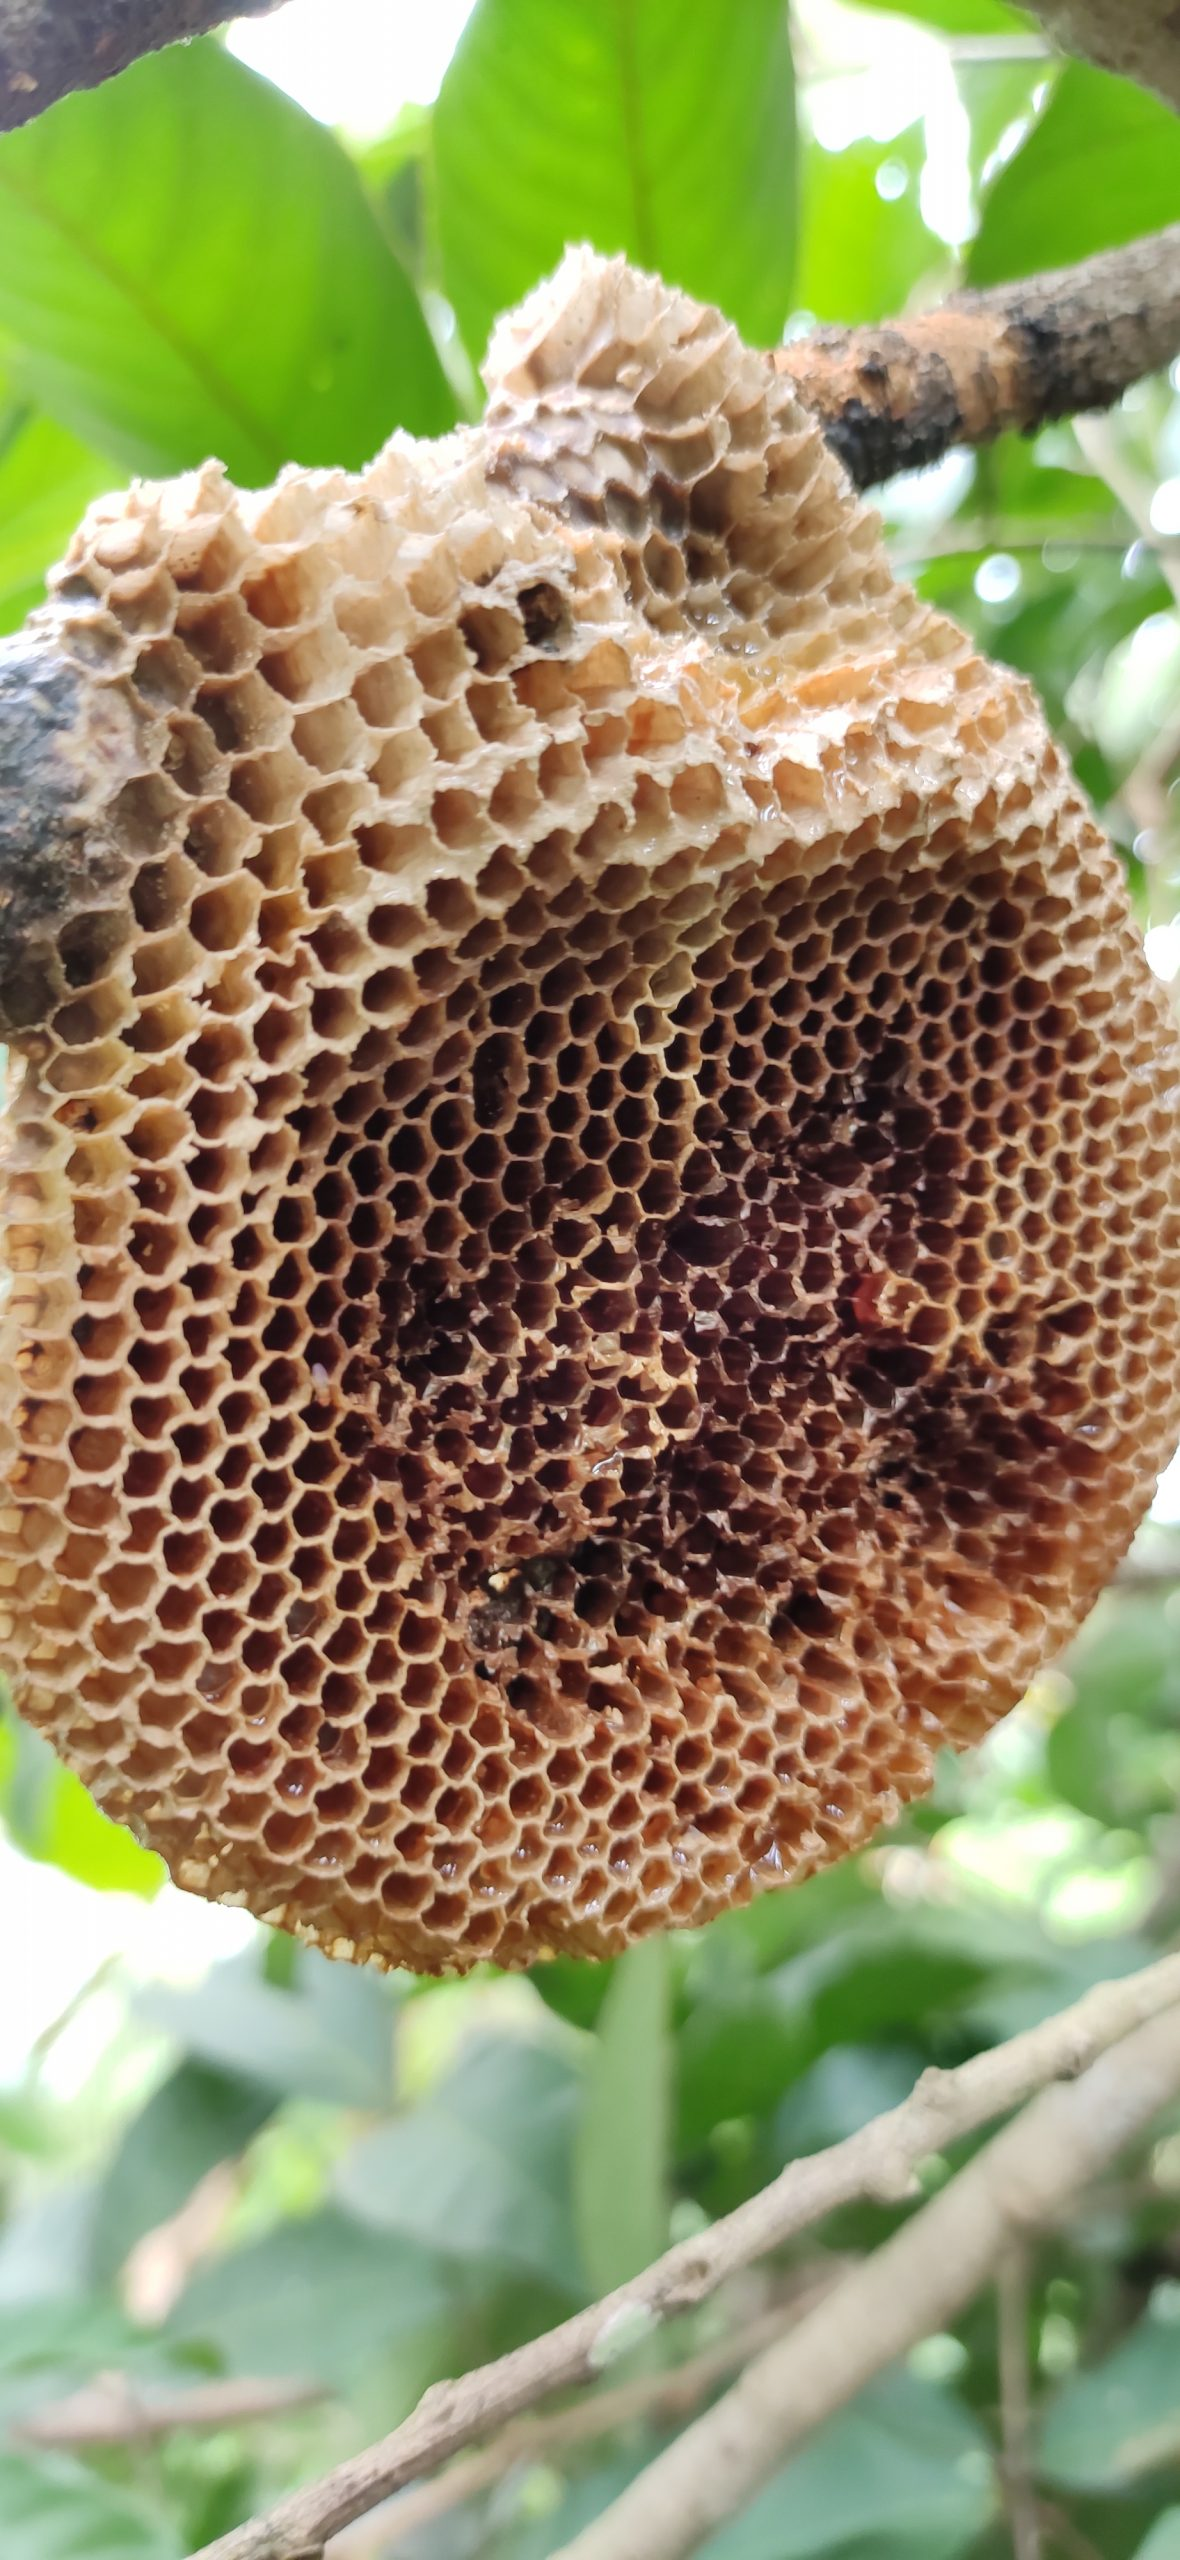 Honeycomb in the branch of tree